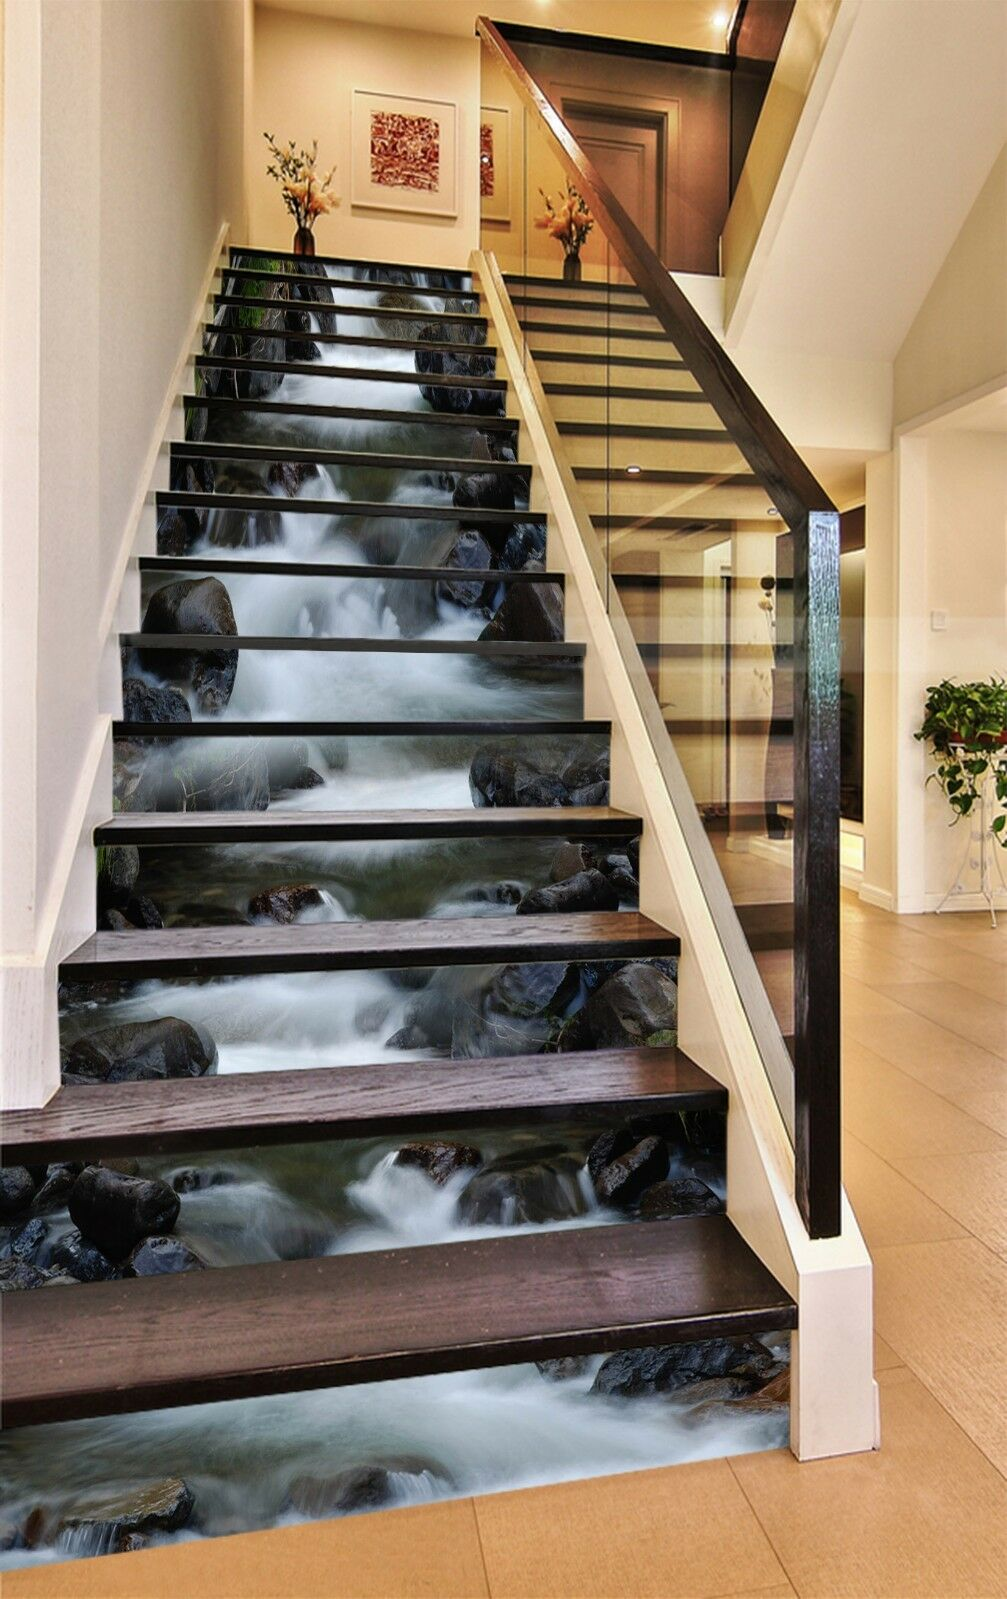 3D Stone spring Stair Risers Decoration Photo Mural Vinyl Decal Wallpaper AU